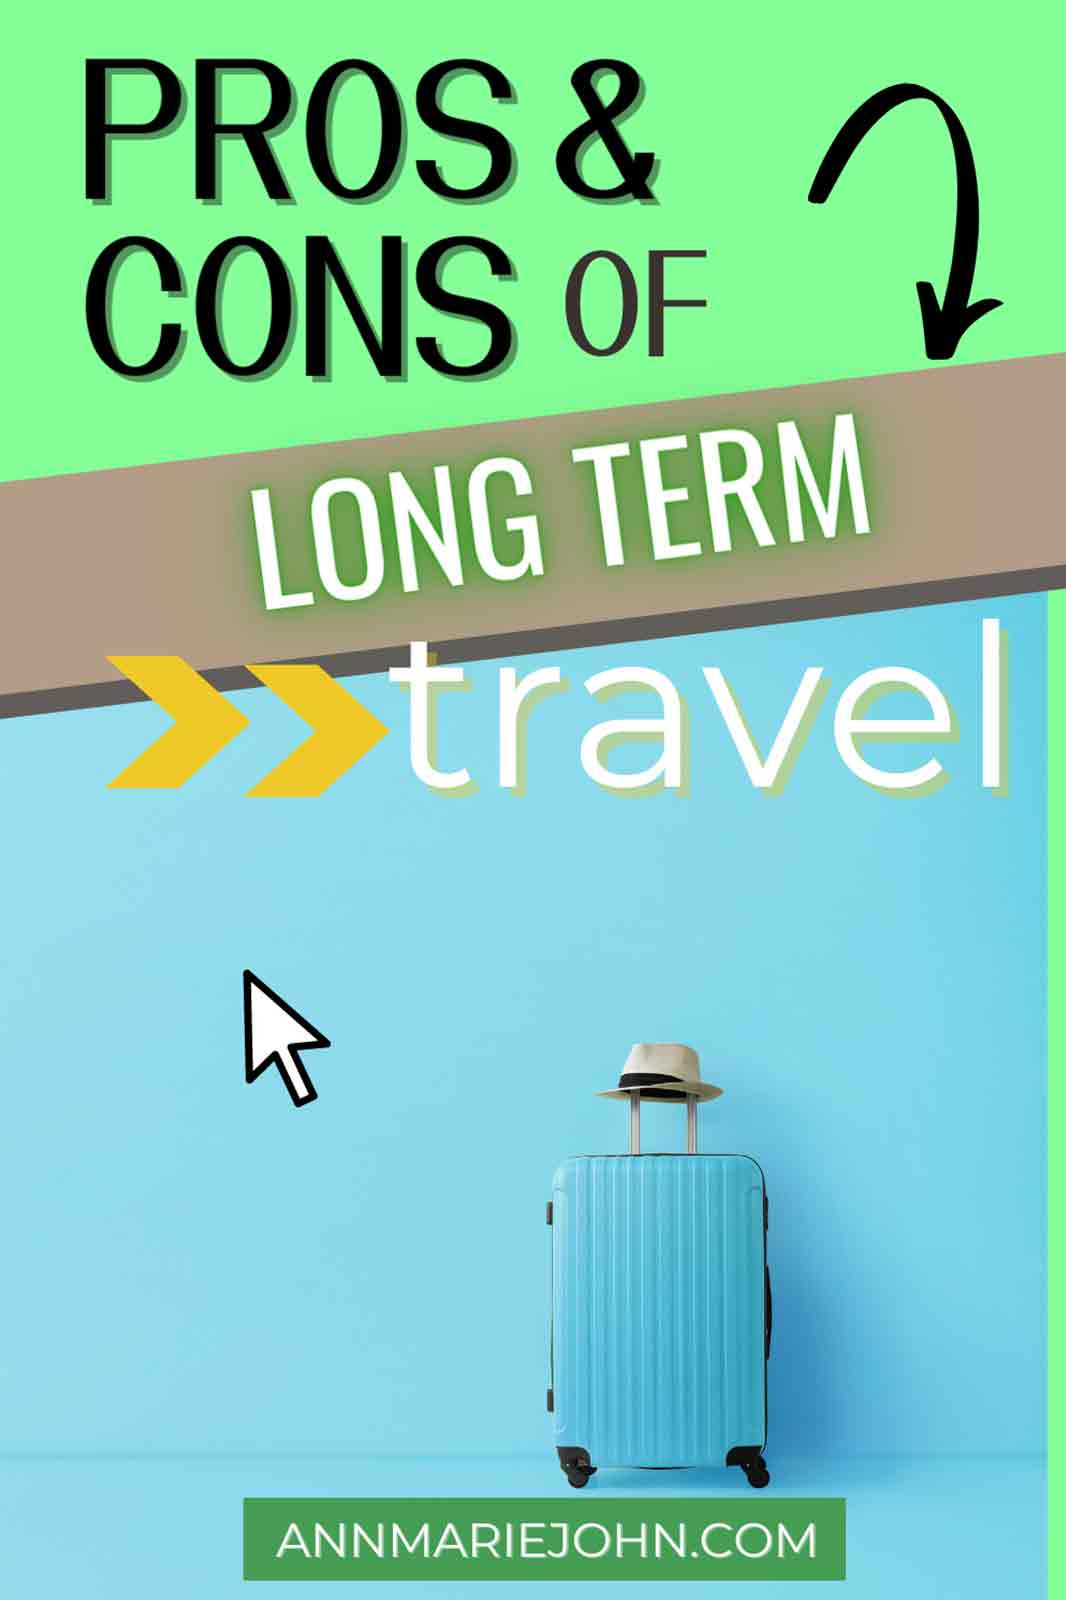 The Pros And Cons Of Long-Term Travel